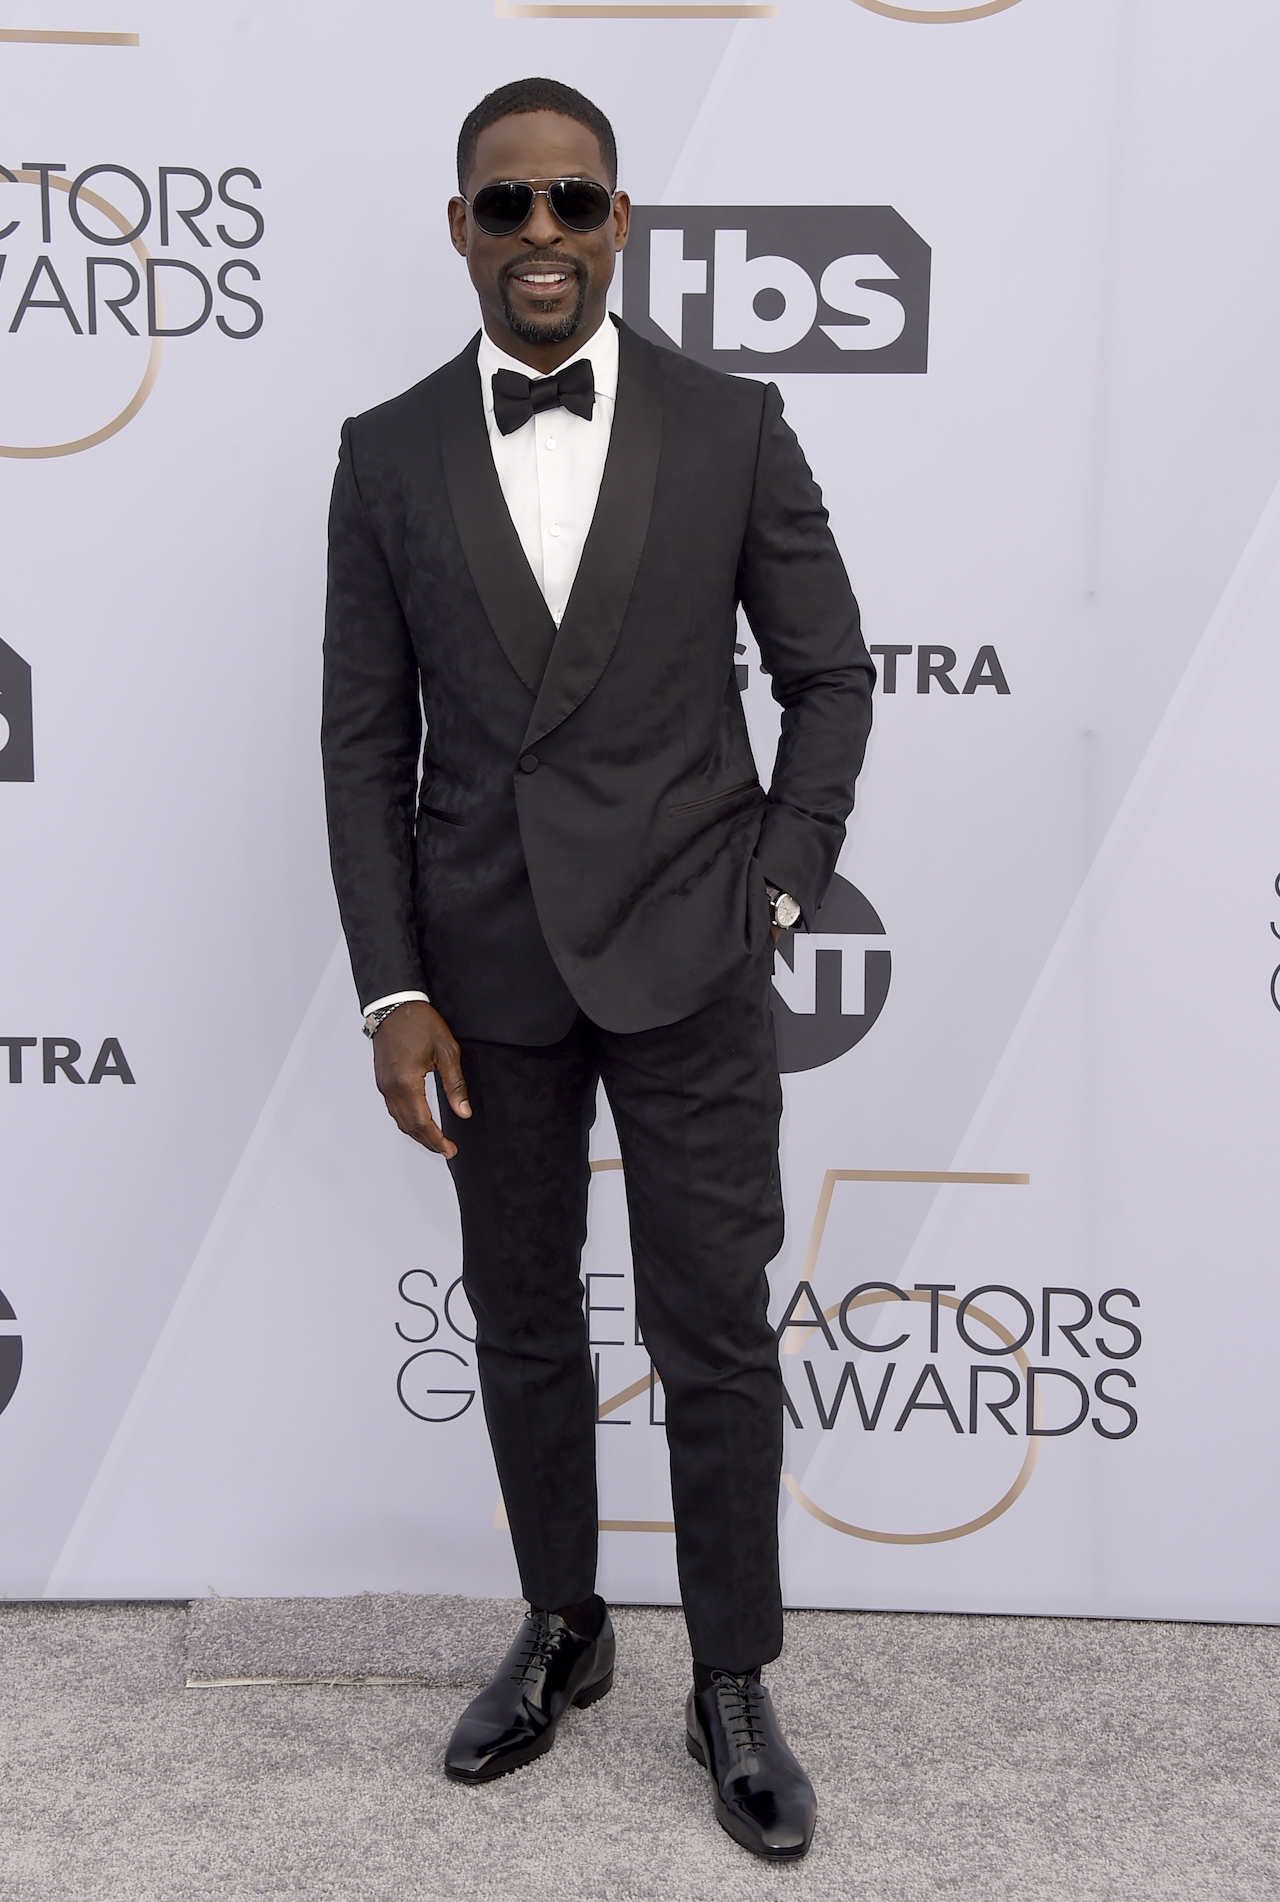 "<div class=""meta image-caption""><div class=""origin-logo origin-image ap""><span>AP</span></div><span class=""caption-text"">Sterling K. Brown arrives at the 25th annual Screen Actors Guild Awards at the Shrine Auditorium & Expo Hall on Sunday, Jan. 27, 2019, in Los Angeles. (Jordan Strauss/Invision/AP)</span></div>"